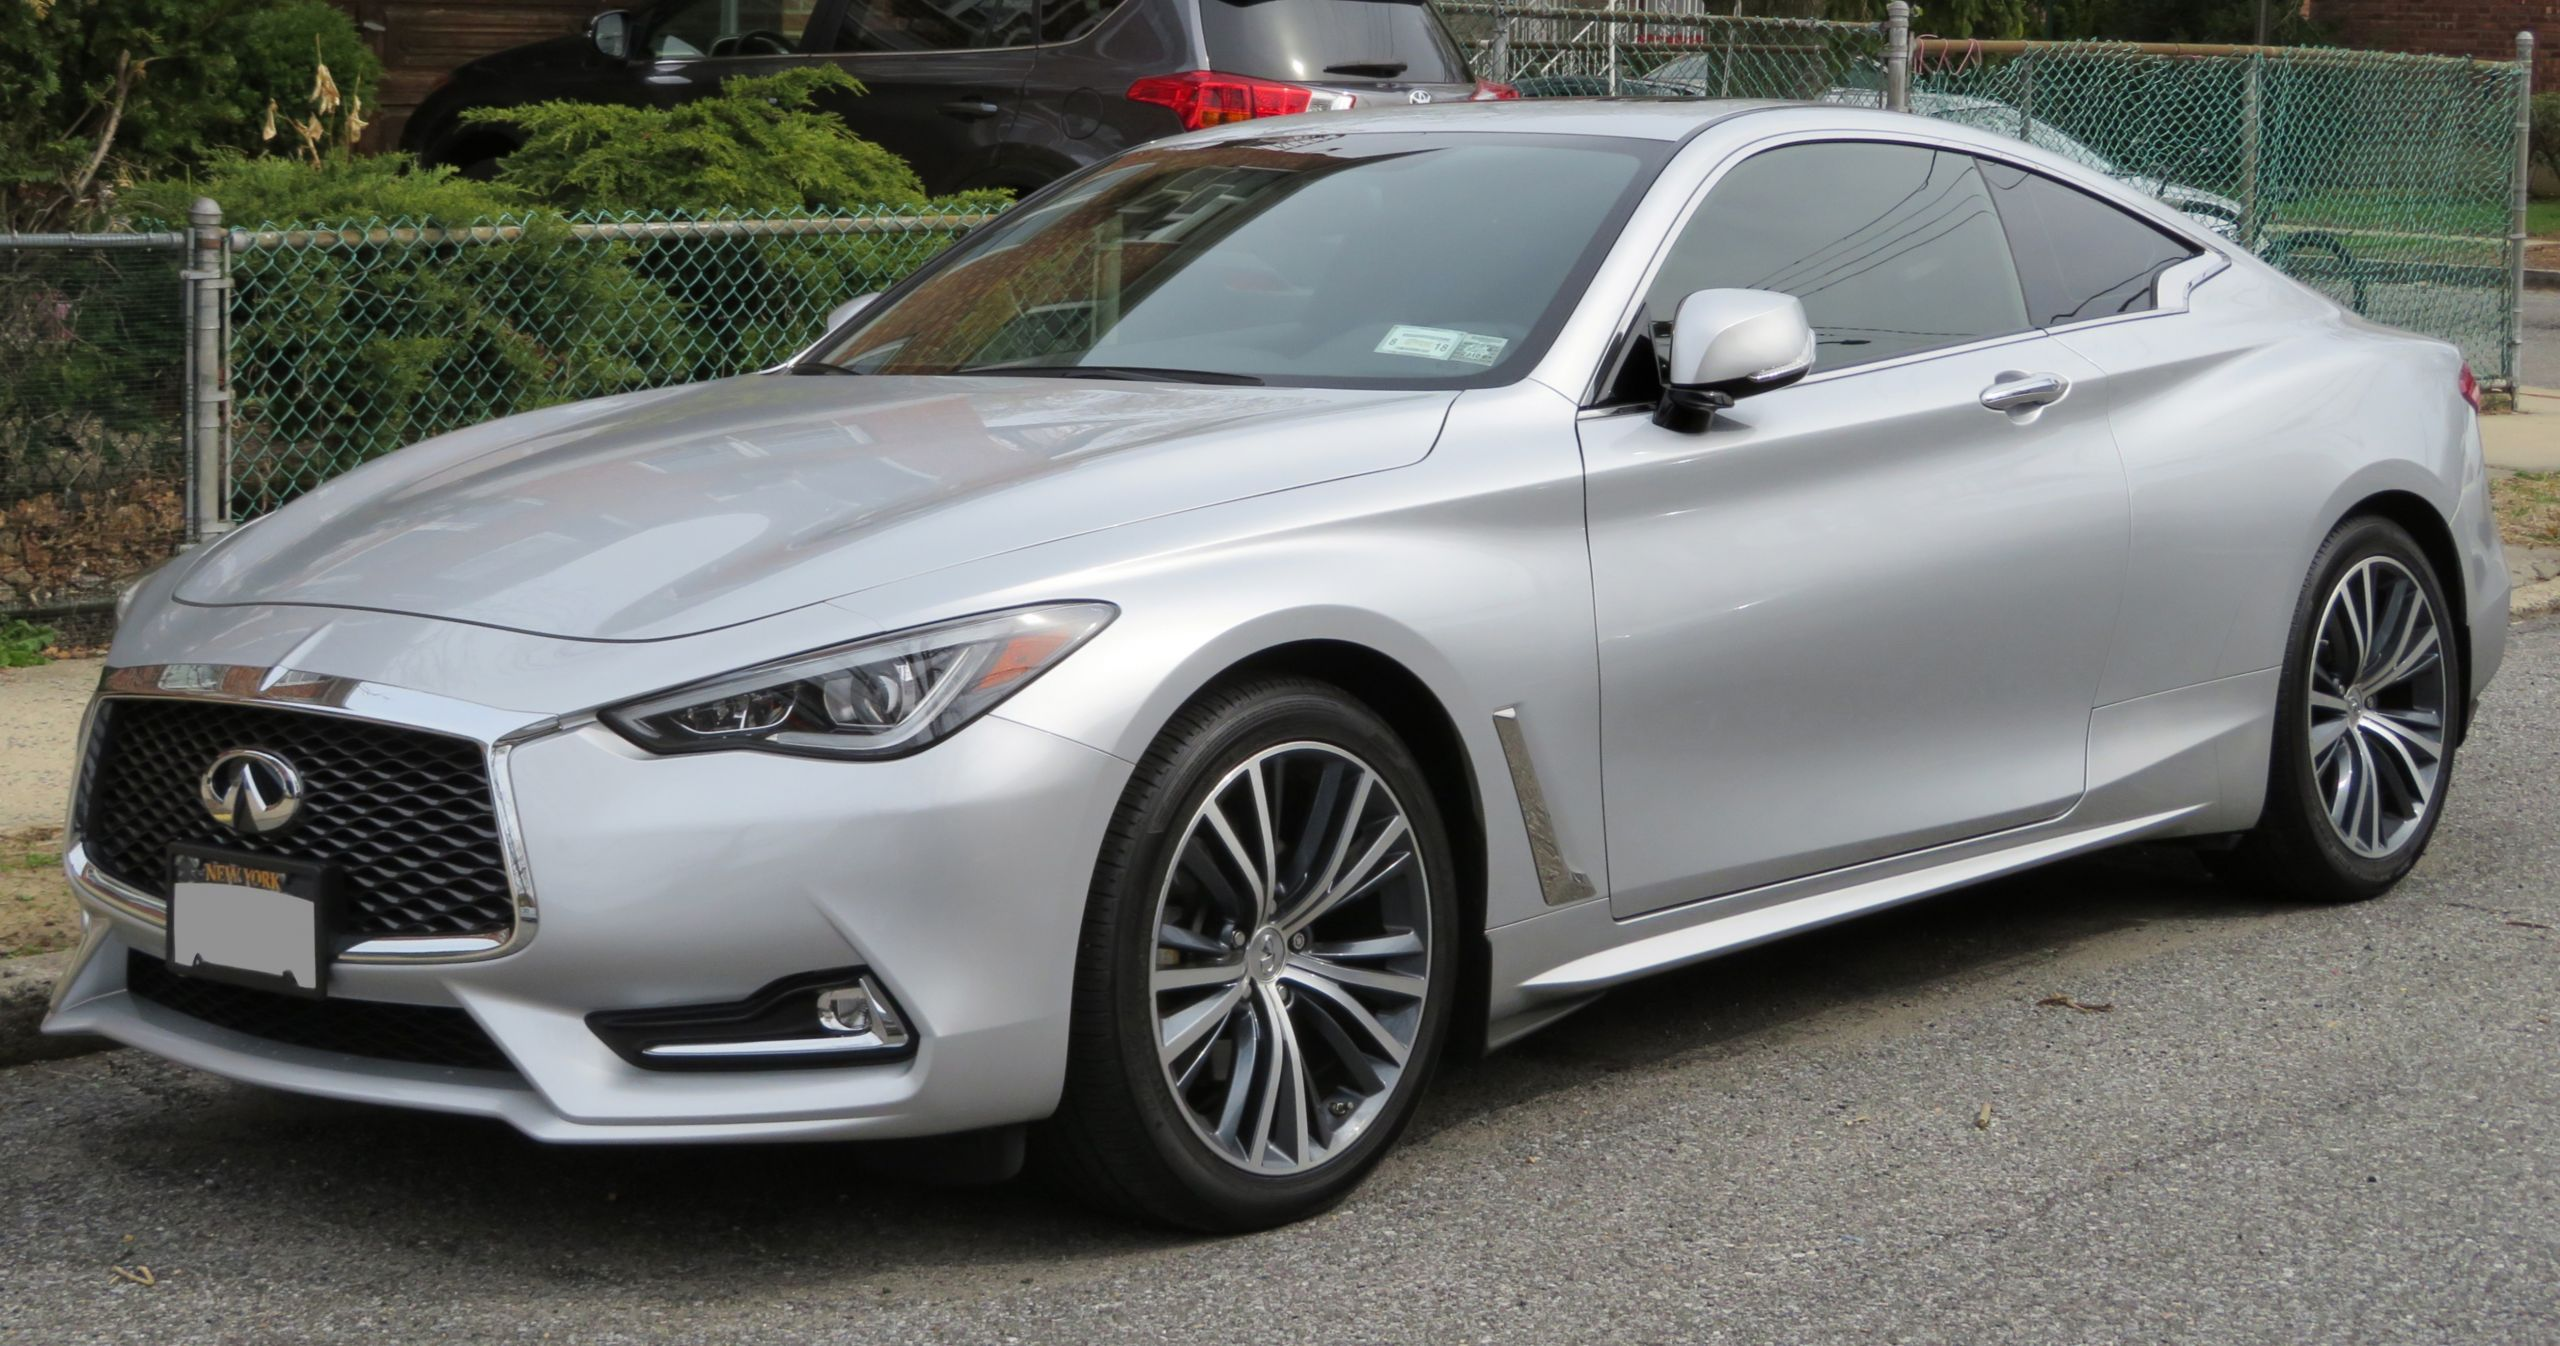 2021 Infiniti Q60 Coupe Convertible Concept and Review